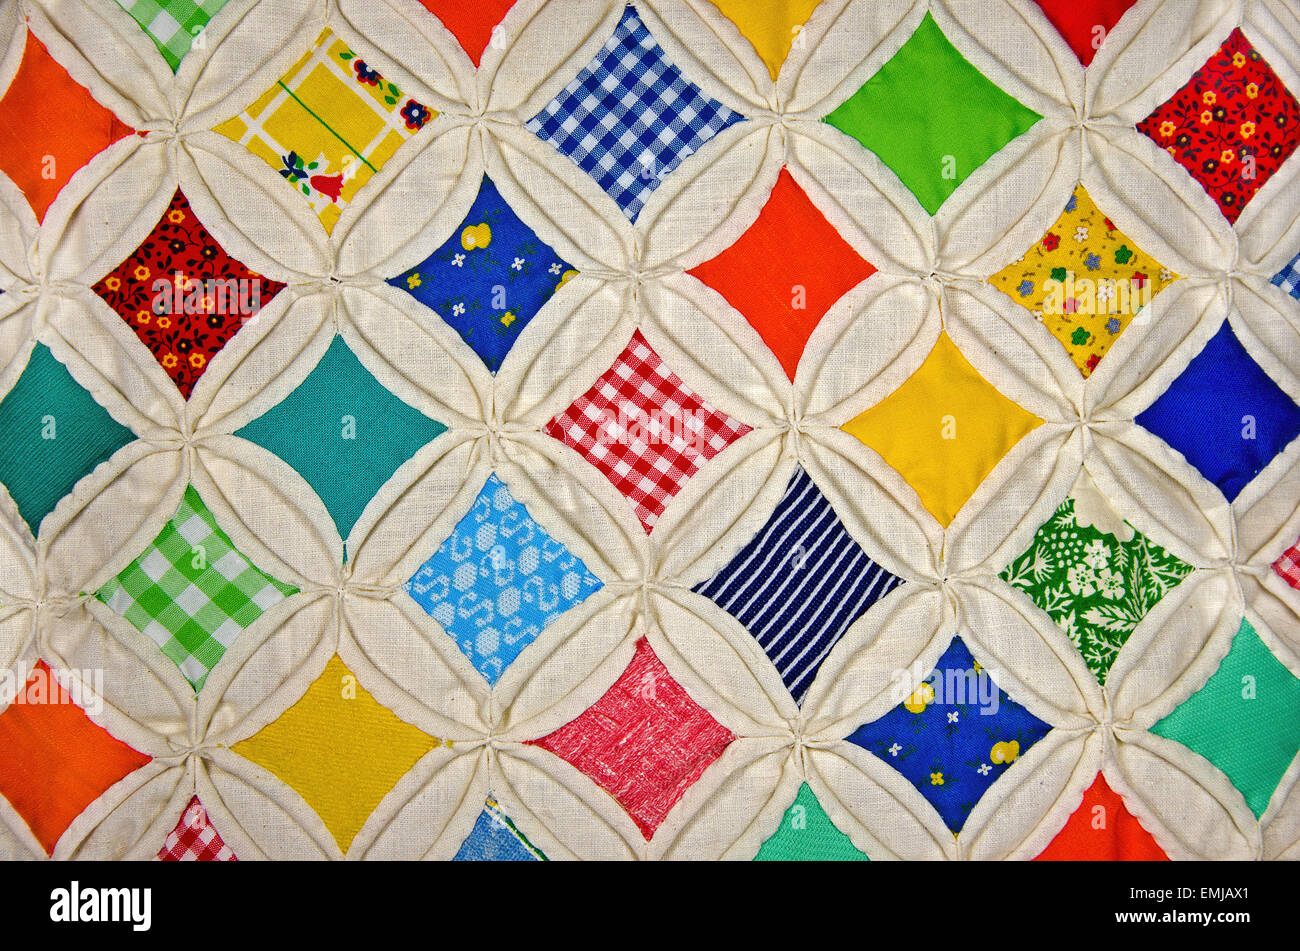 Colorful cathedral window quilt with muslin. - Stock Image